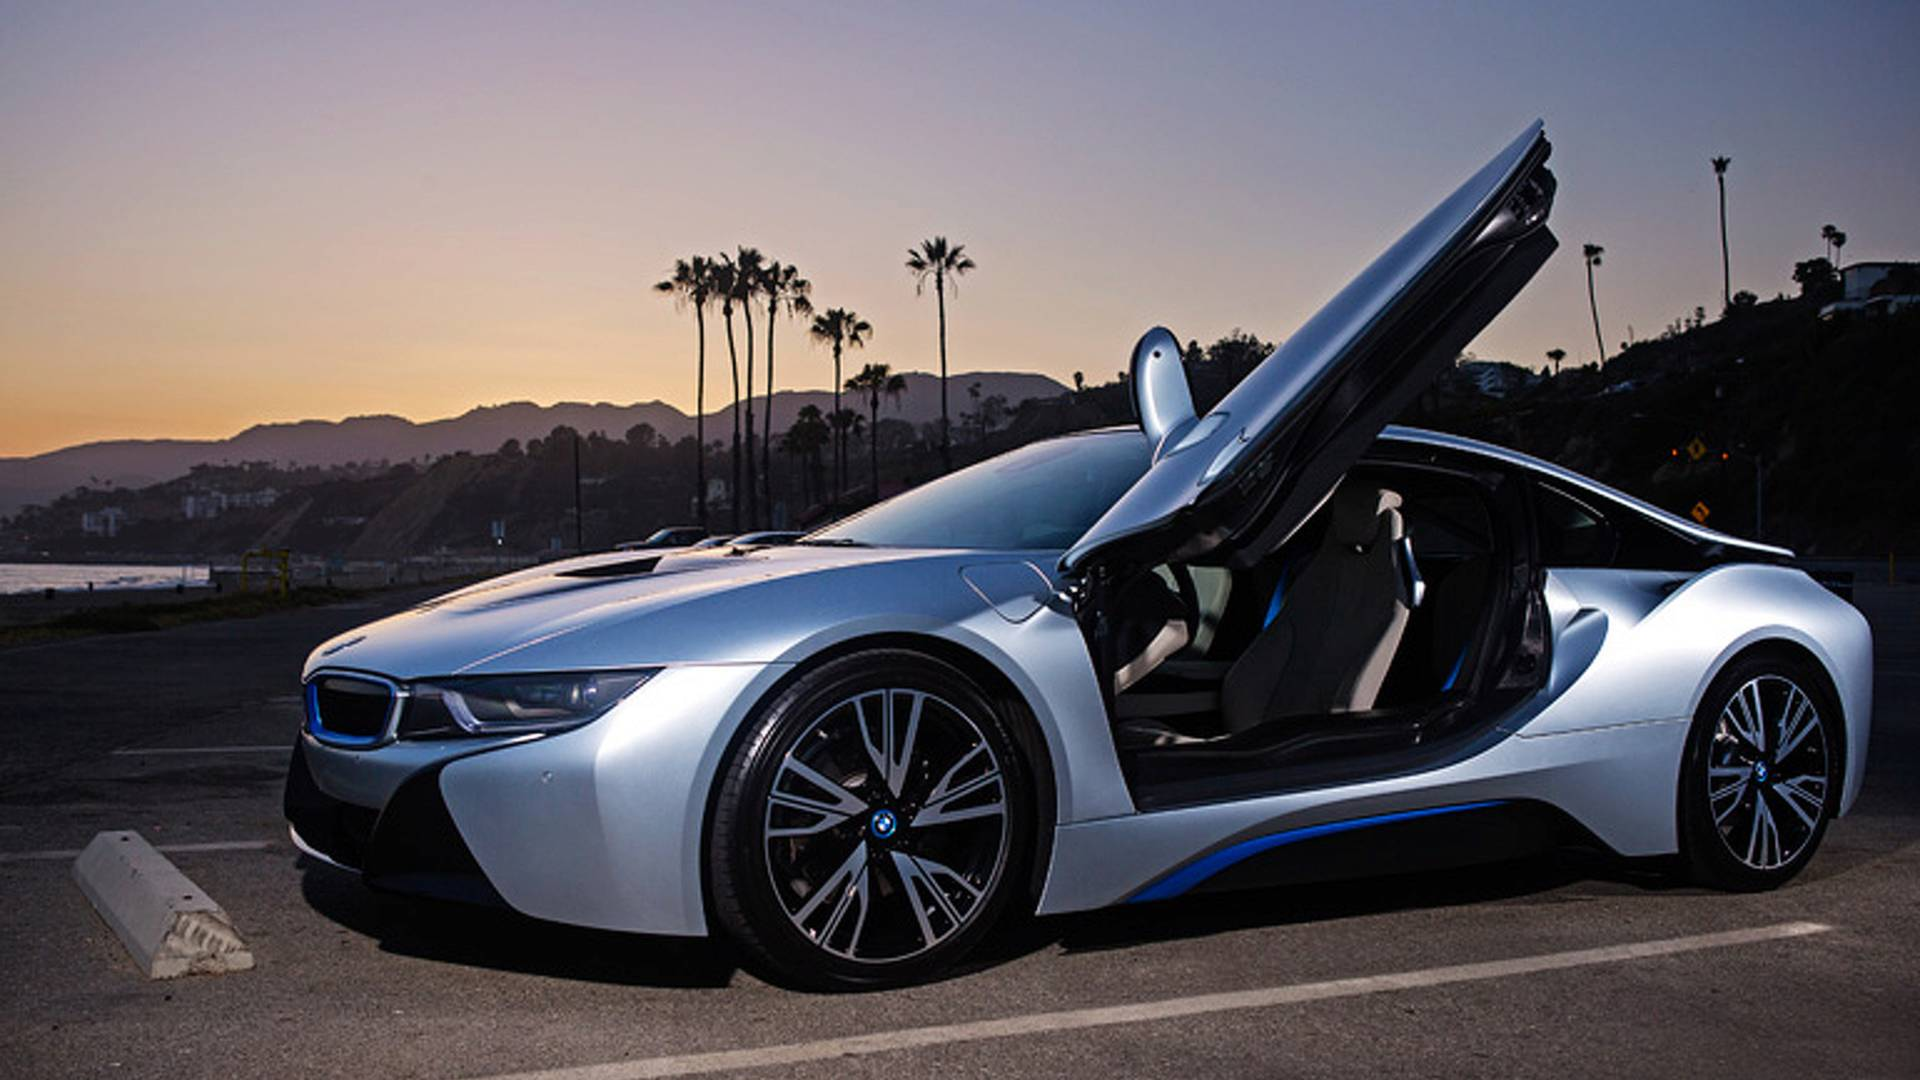 Meet The Laser Equipped Electric Car Of The Future The 2015 Bmw I8